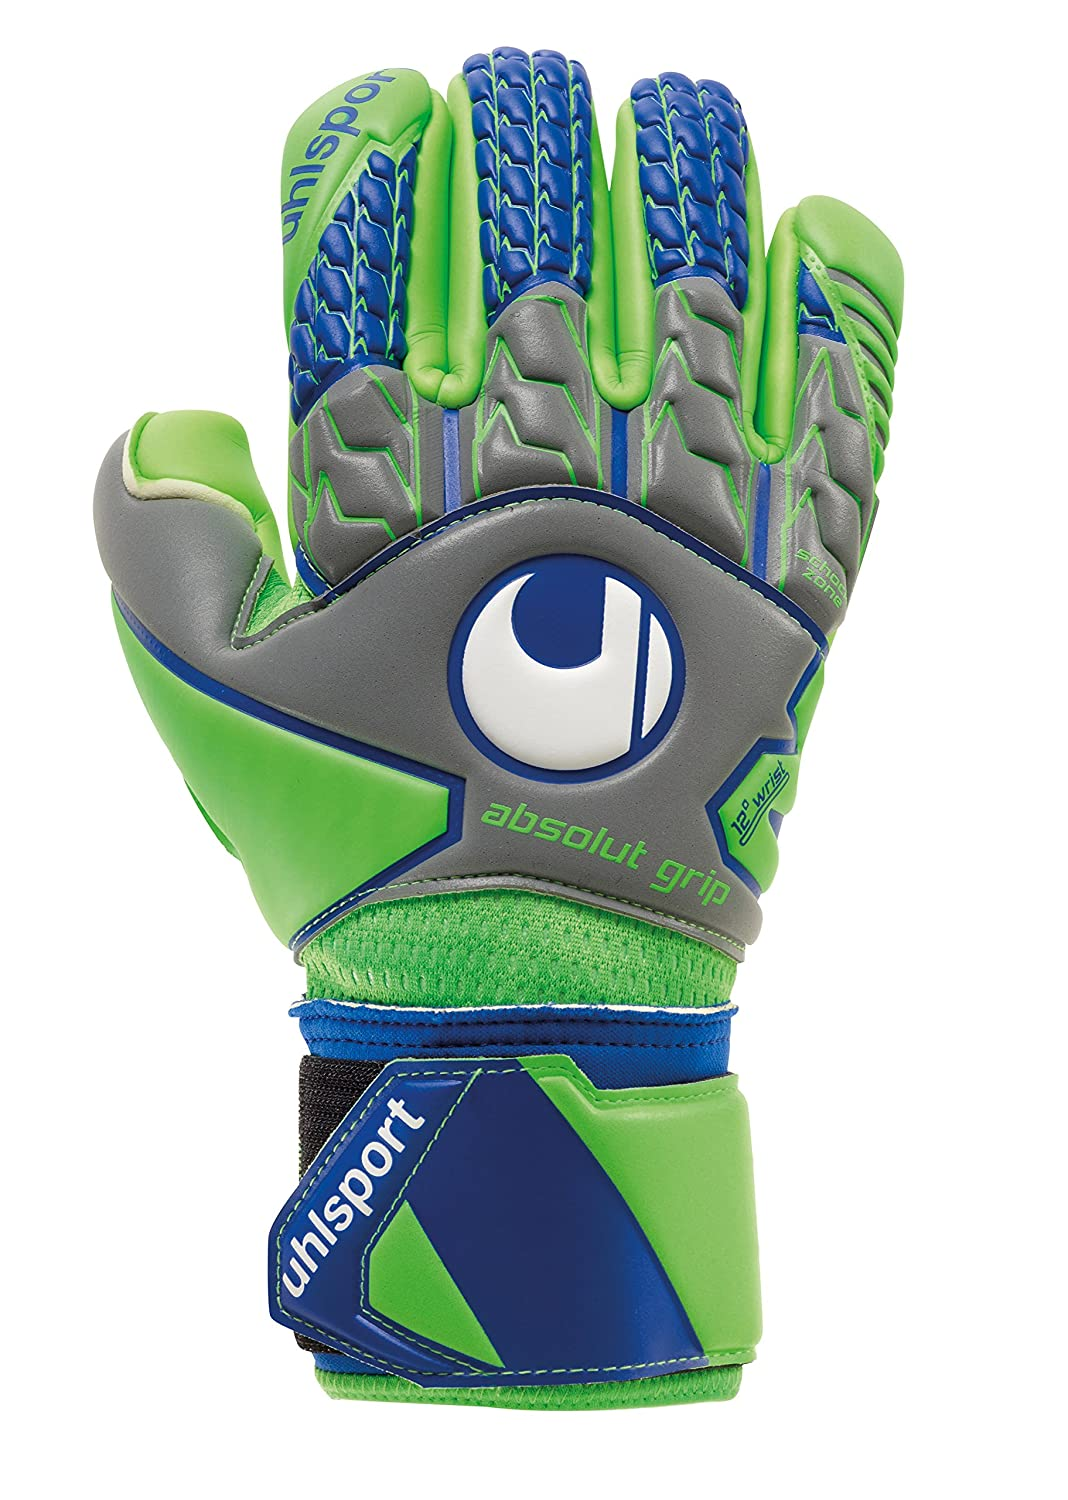 Uhlsport Tensiongreen Absolutgrip Finger Surround Torwarthandschuhe